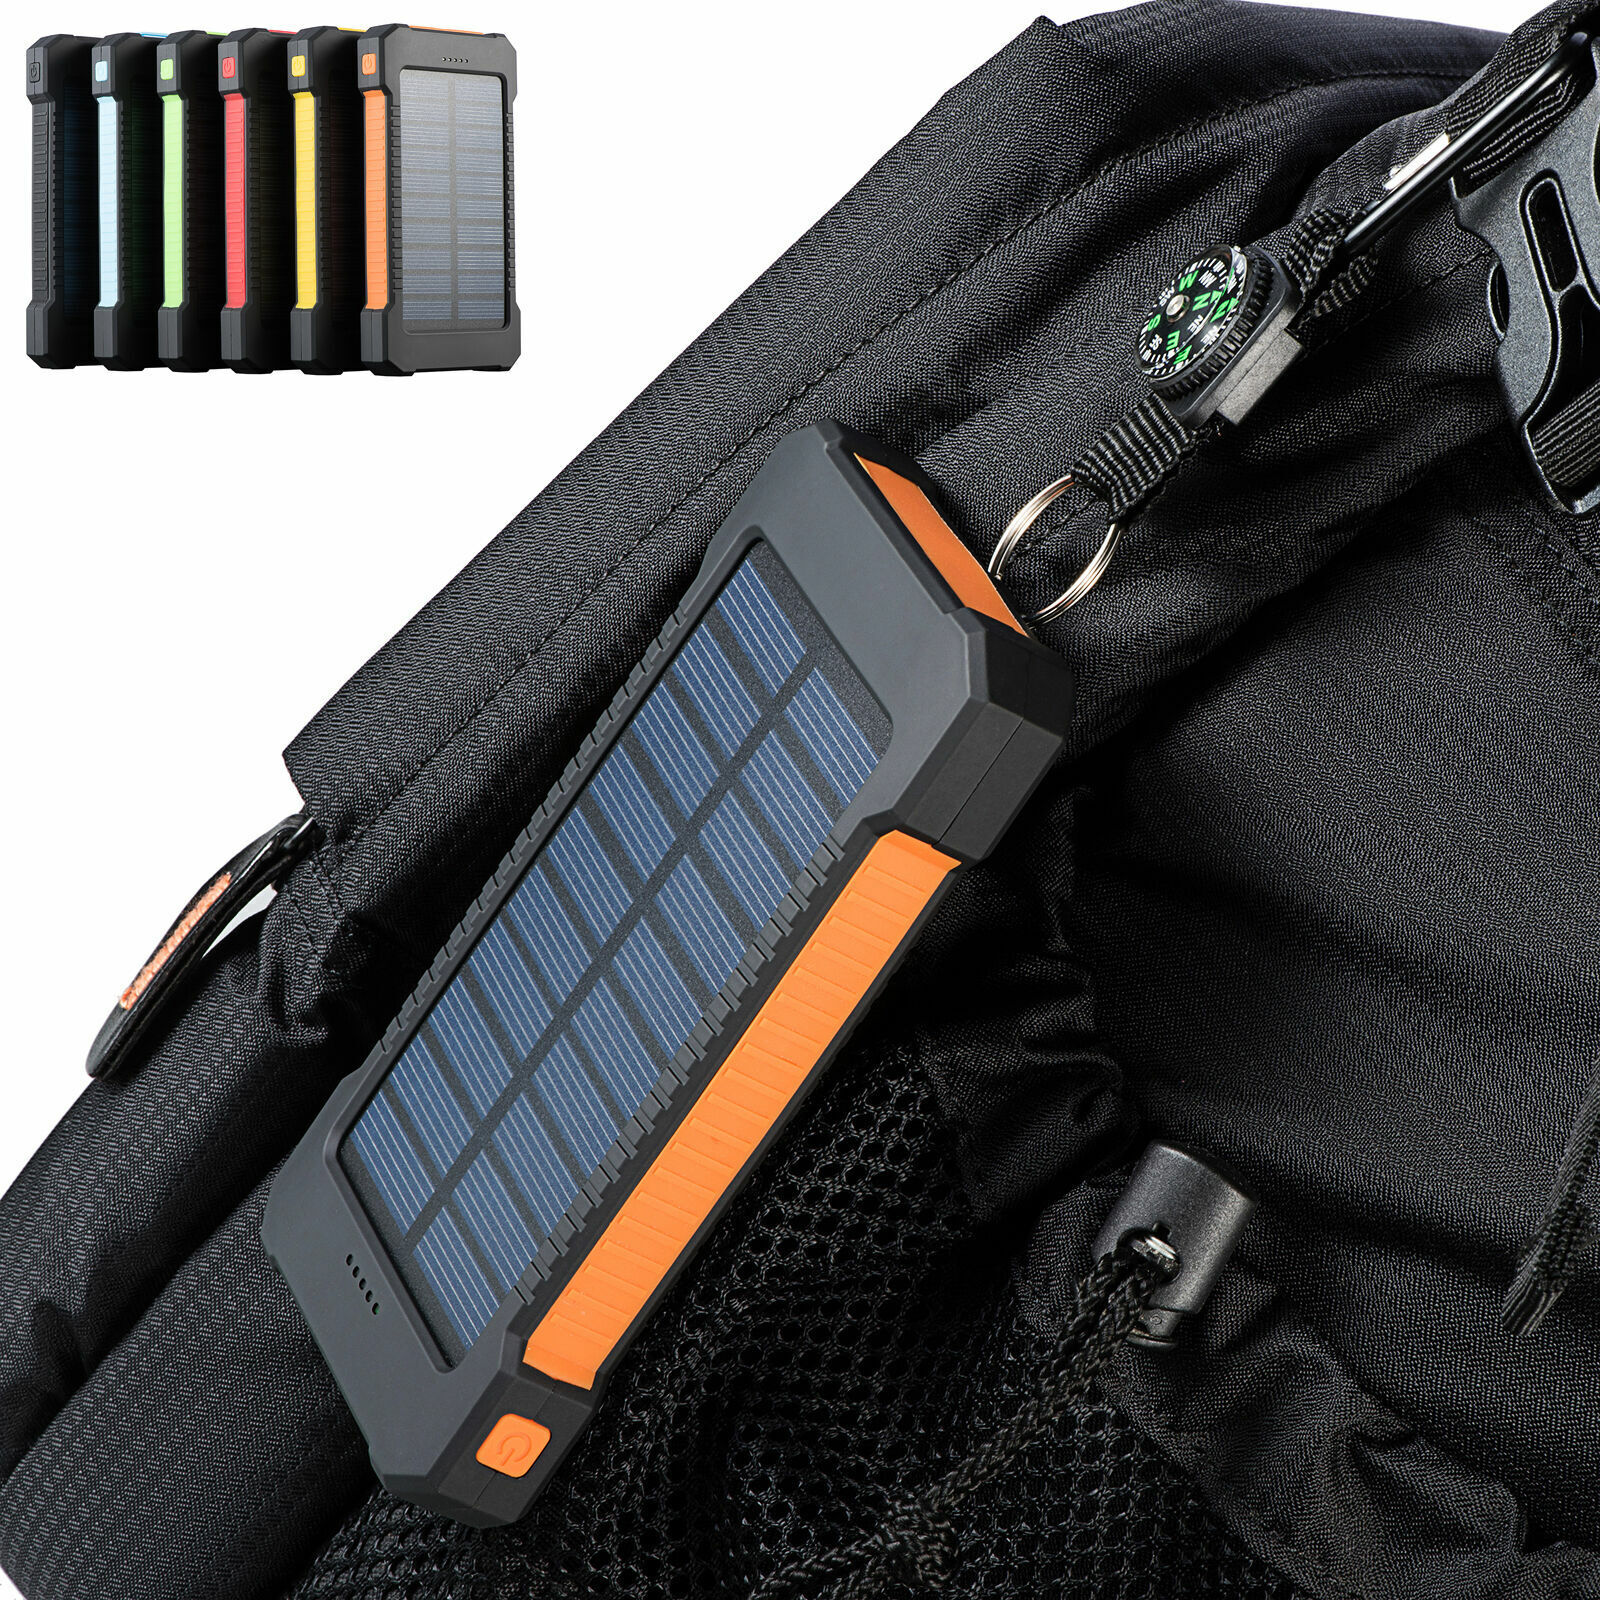 2020 Waterproof Solar Power Bank 900000mAh Portable External Battery Charger US Cell Phone Accessories